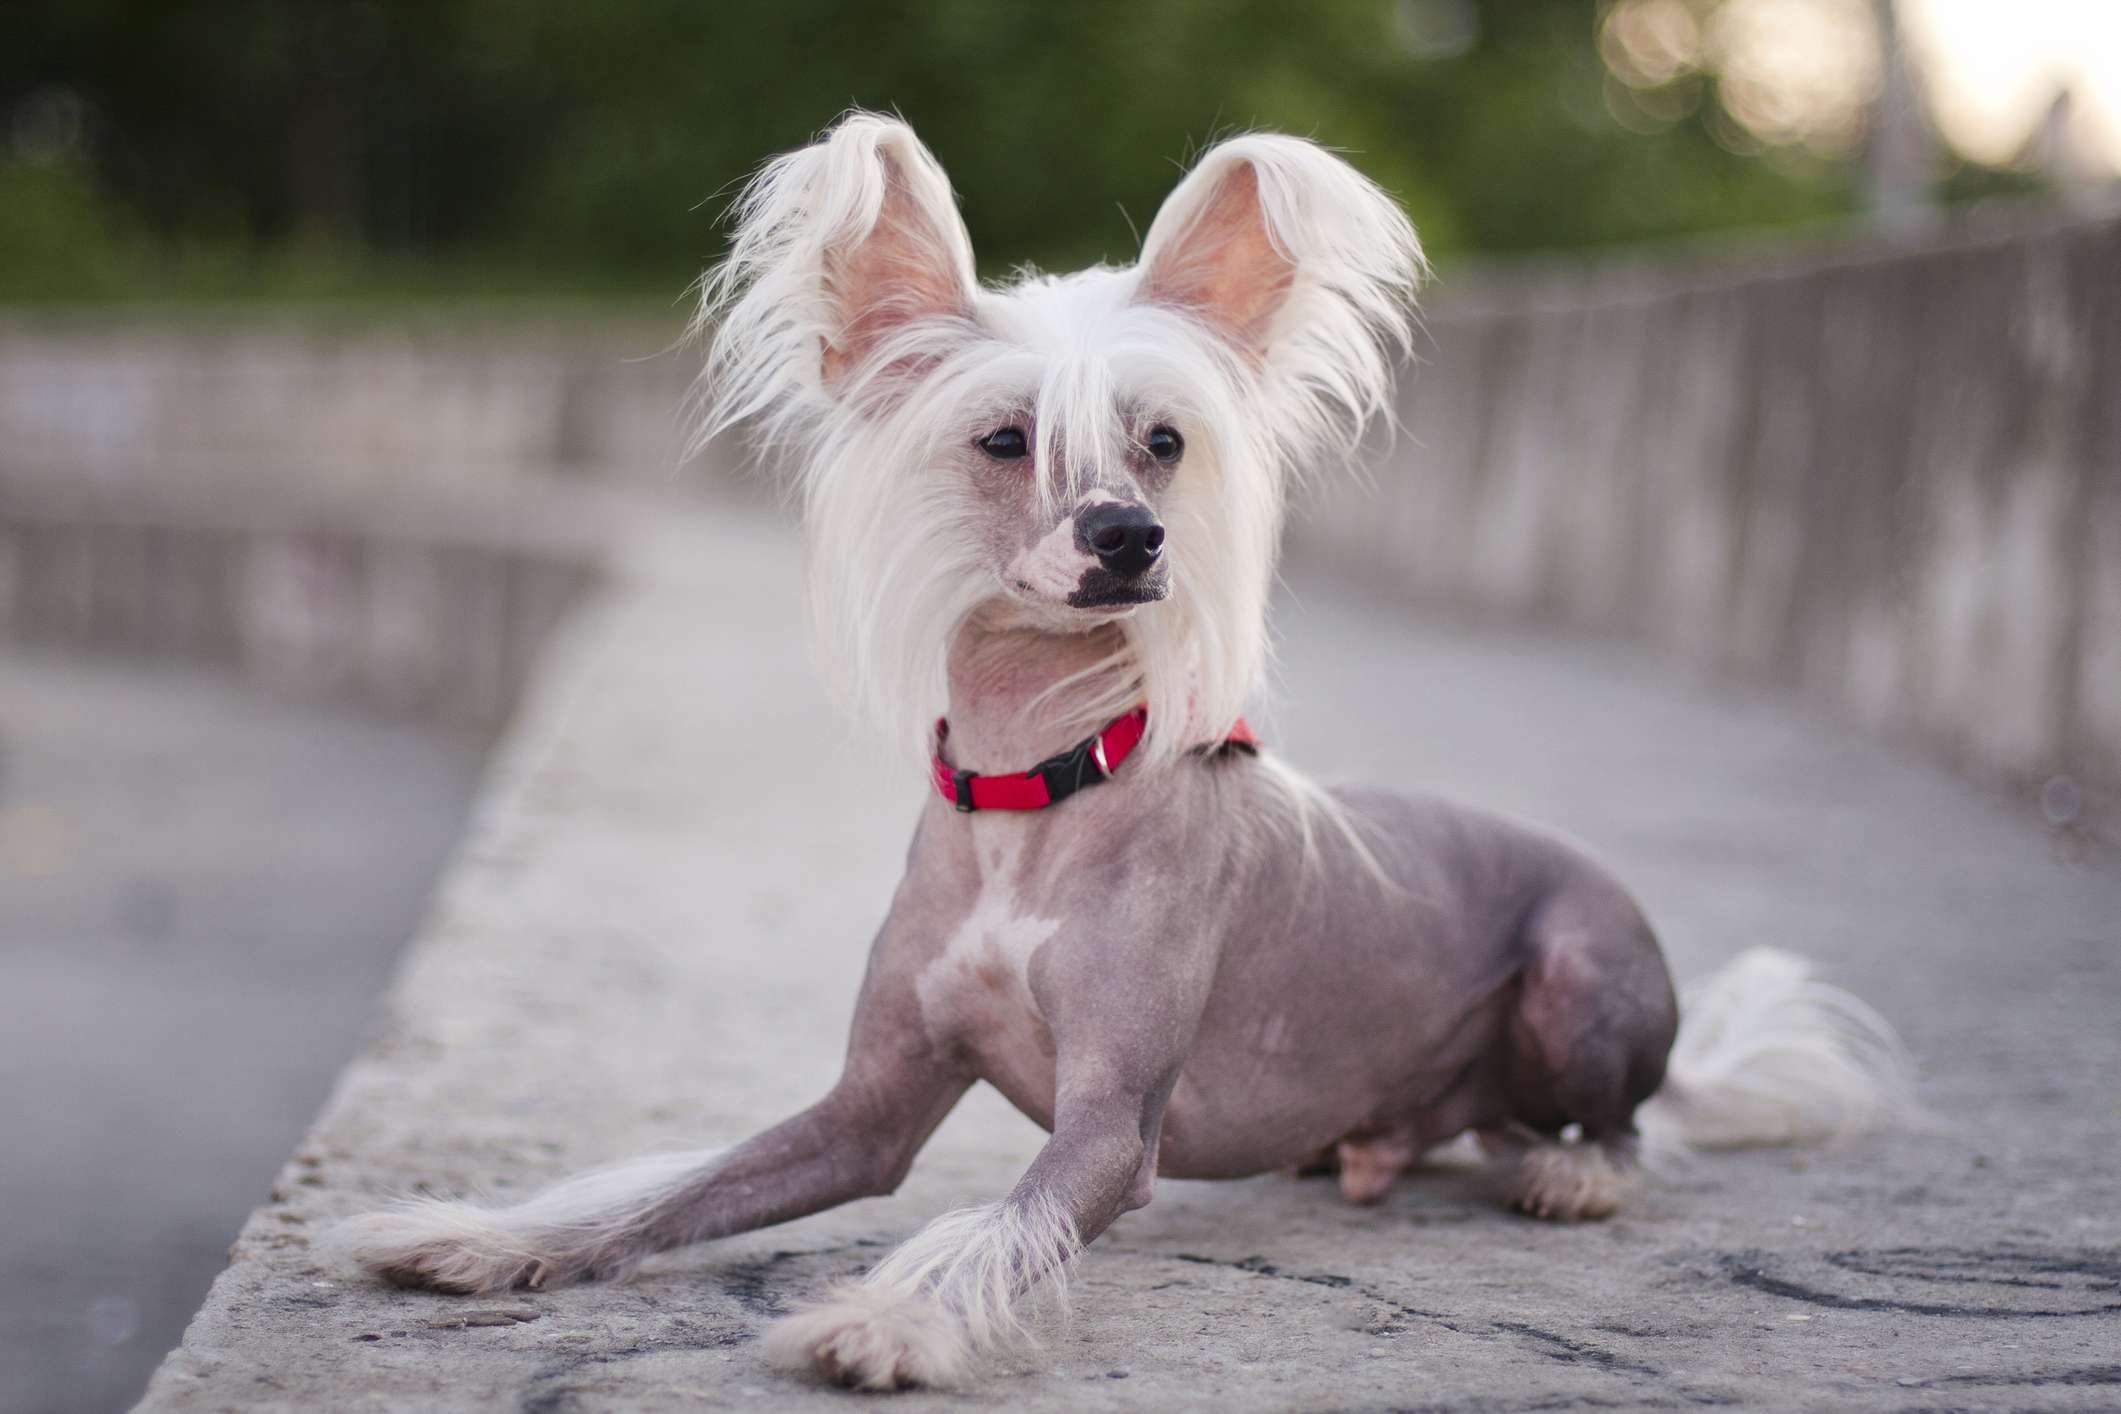 A partially hairless dog with tufts of hair on its head laying down outside.